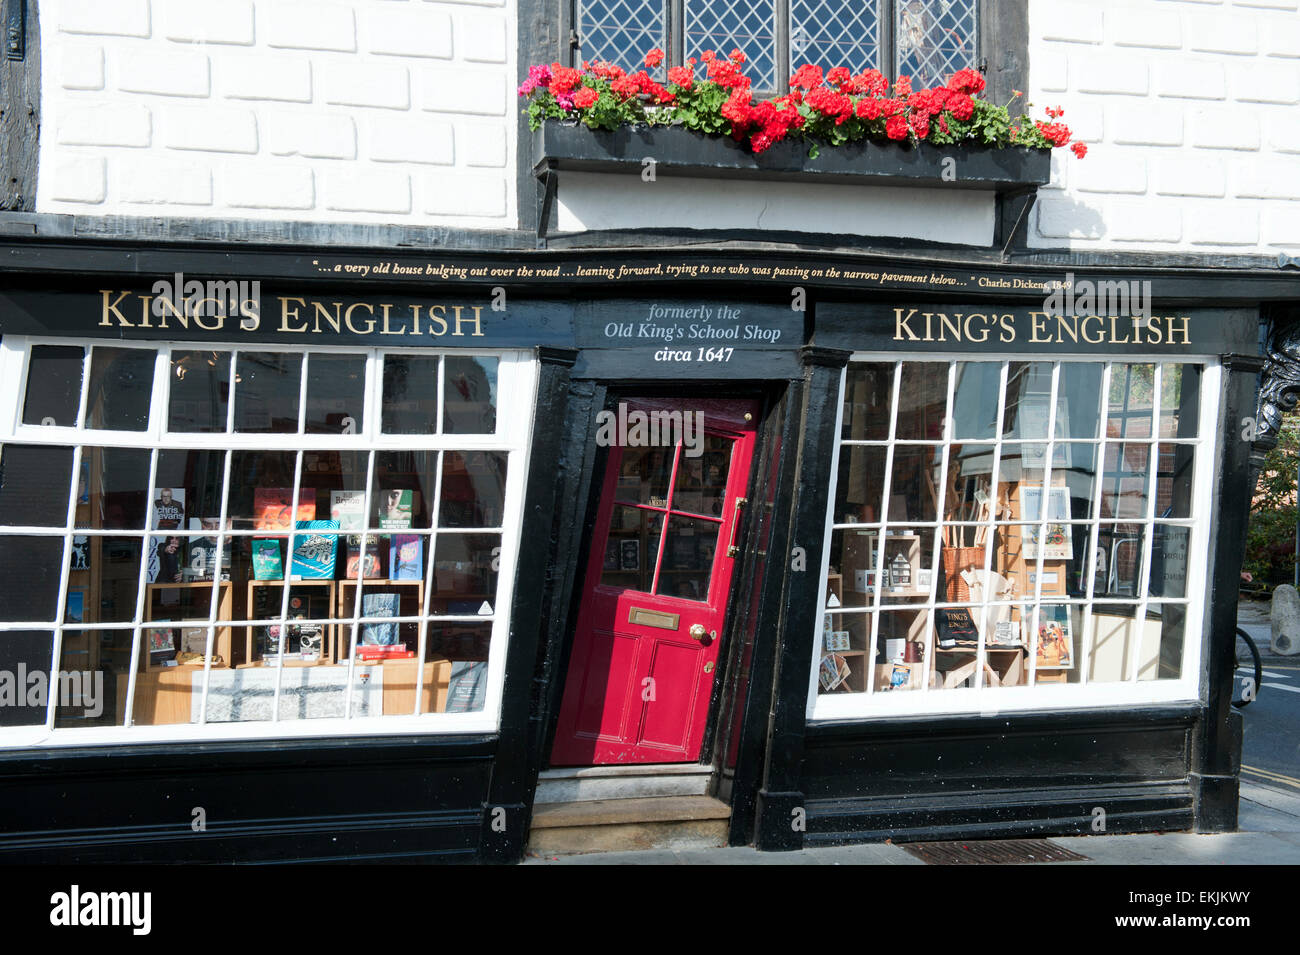 Stock Photo - The crooked door of the Old King\u0027s school shop in Canterbury Kent England europe & The crooked door of the Old King\u0027s school shop in Canterbury Kent ... Pezcame.Com